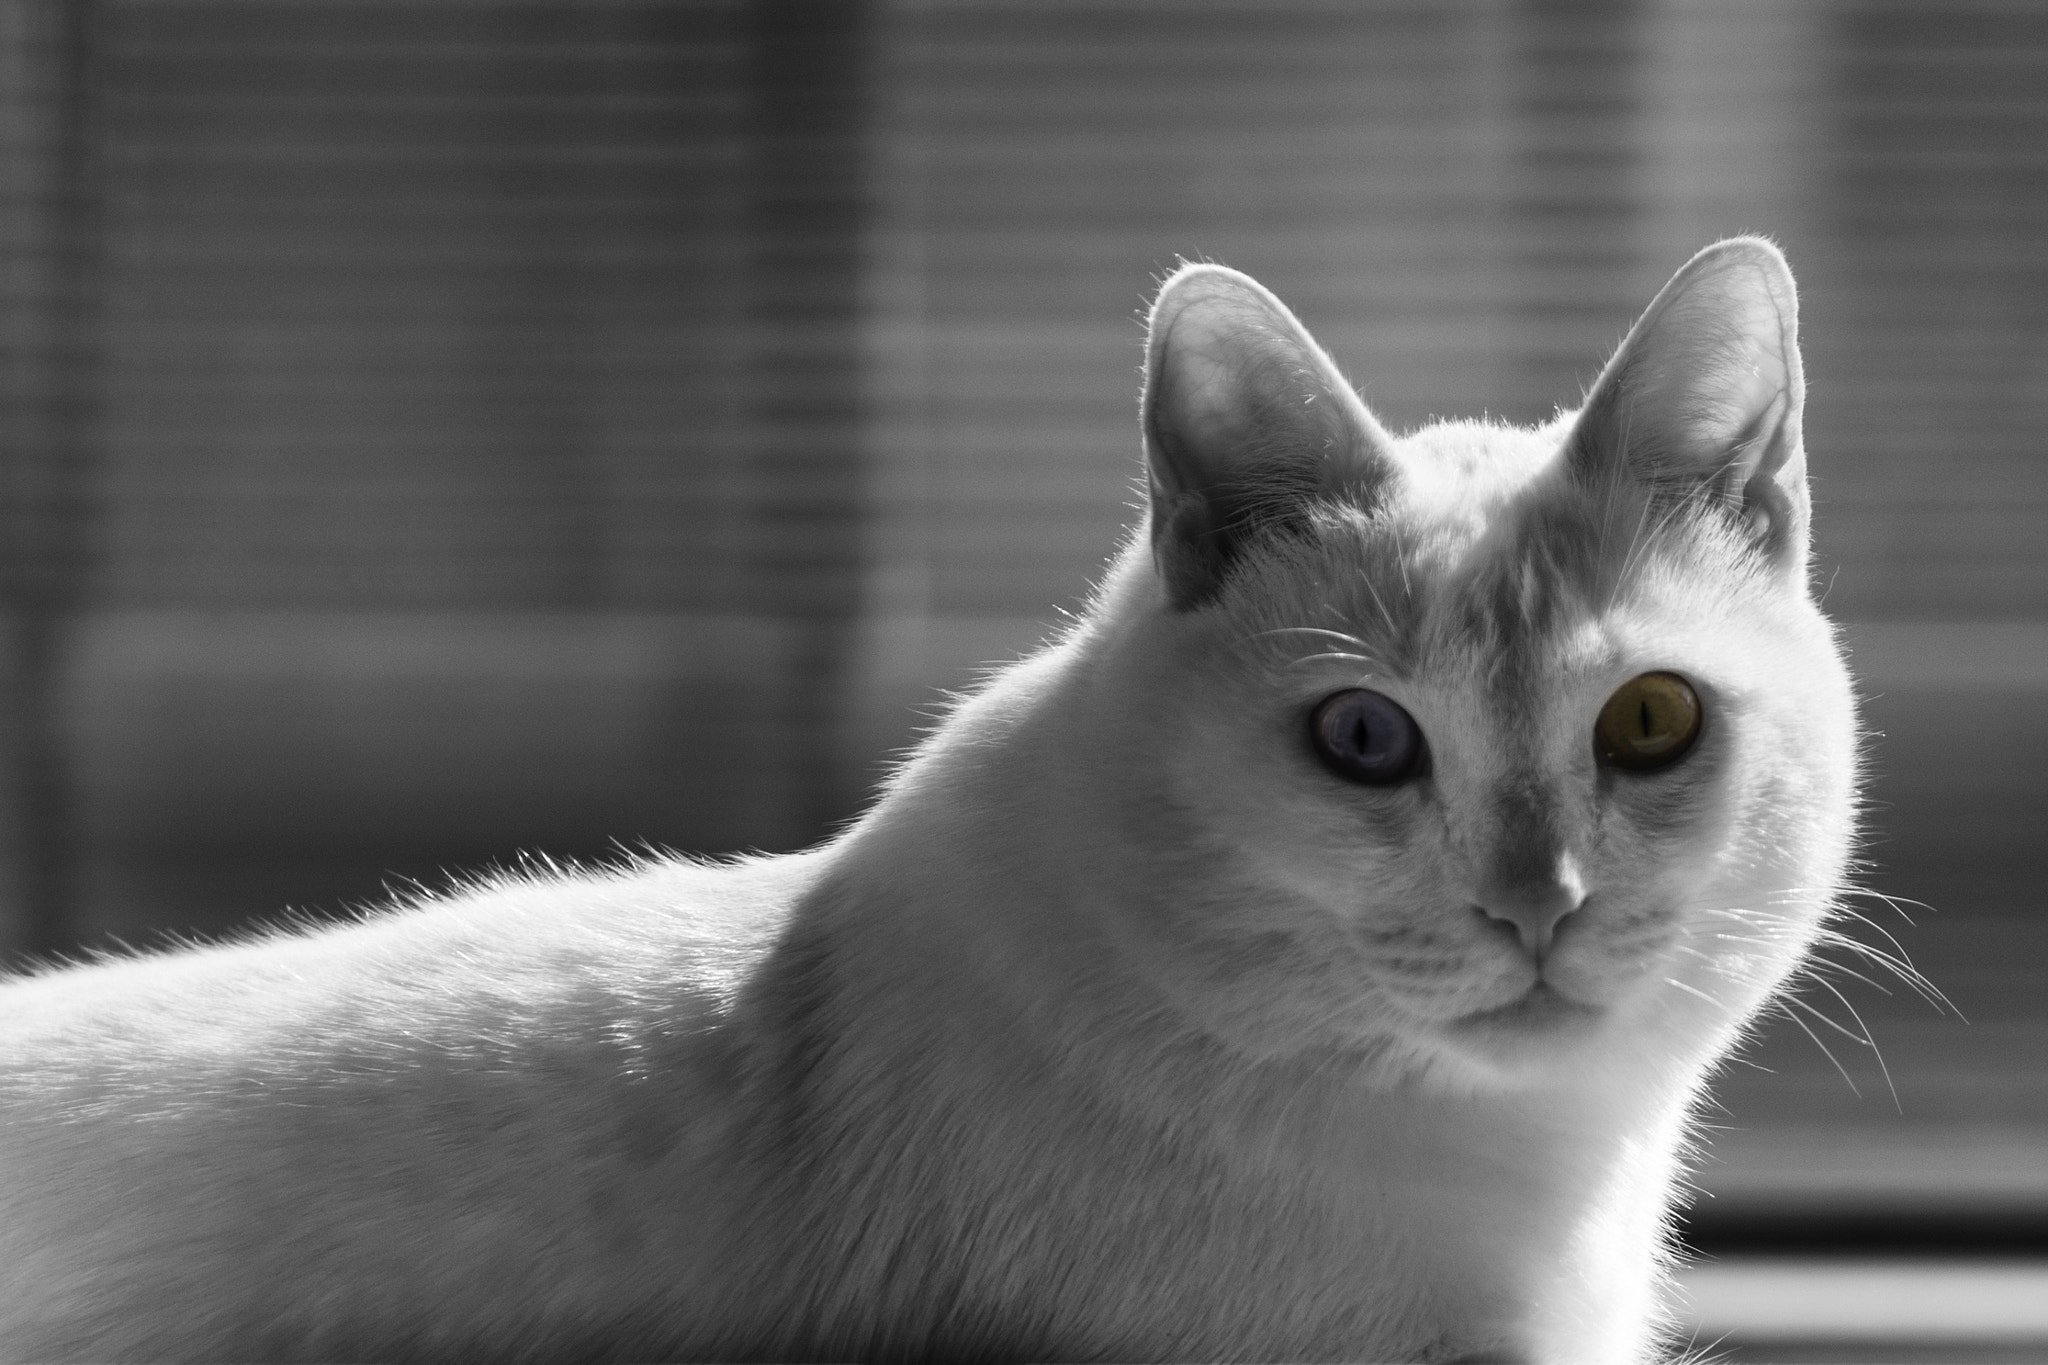 Photograph Different eyes by Daniele Sangiorgio on 500px